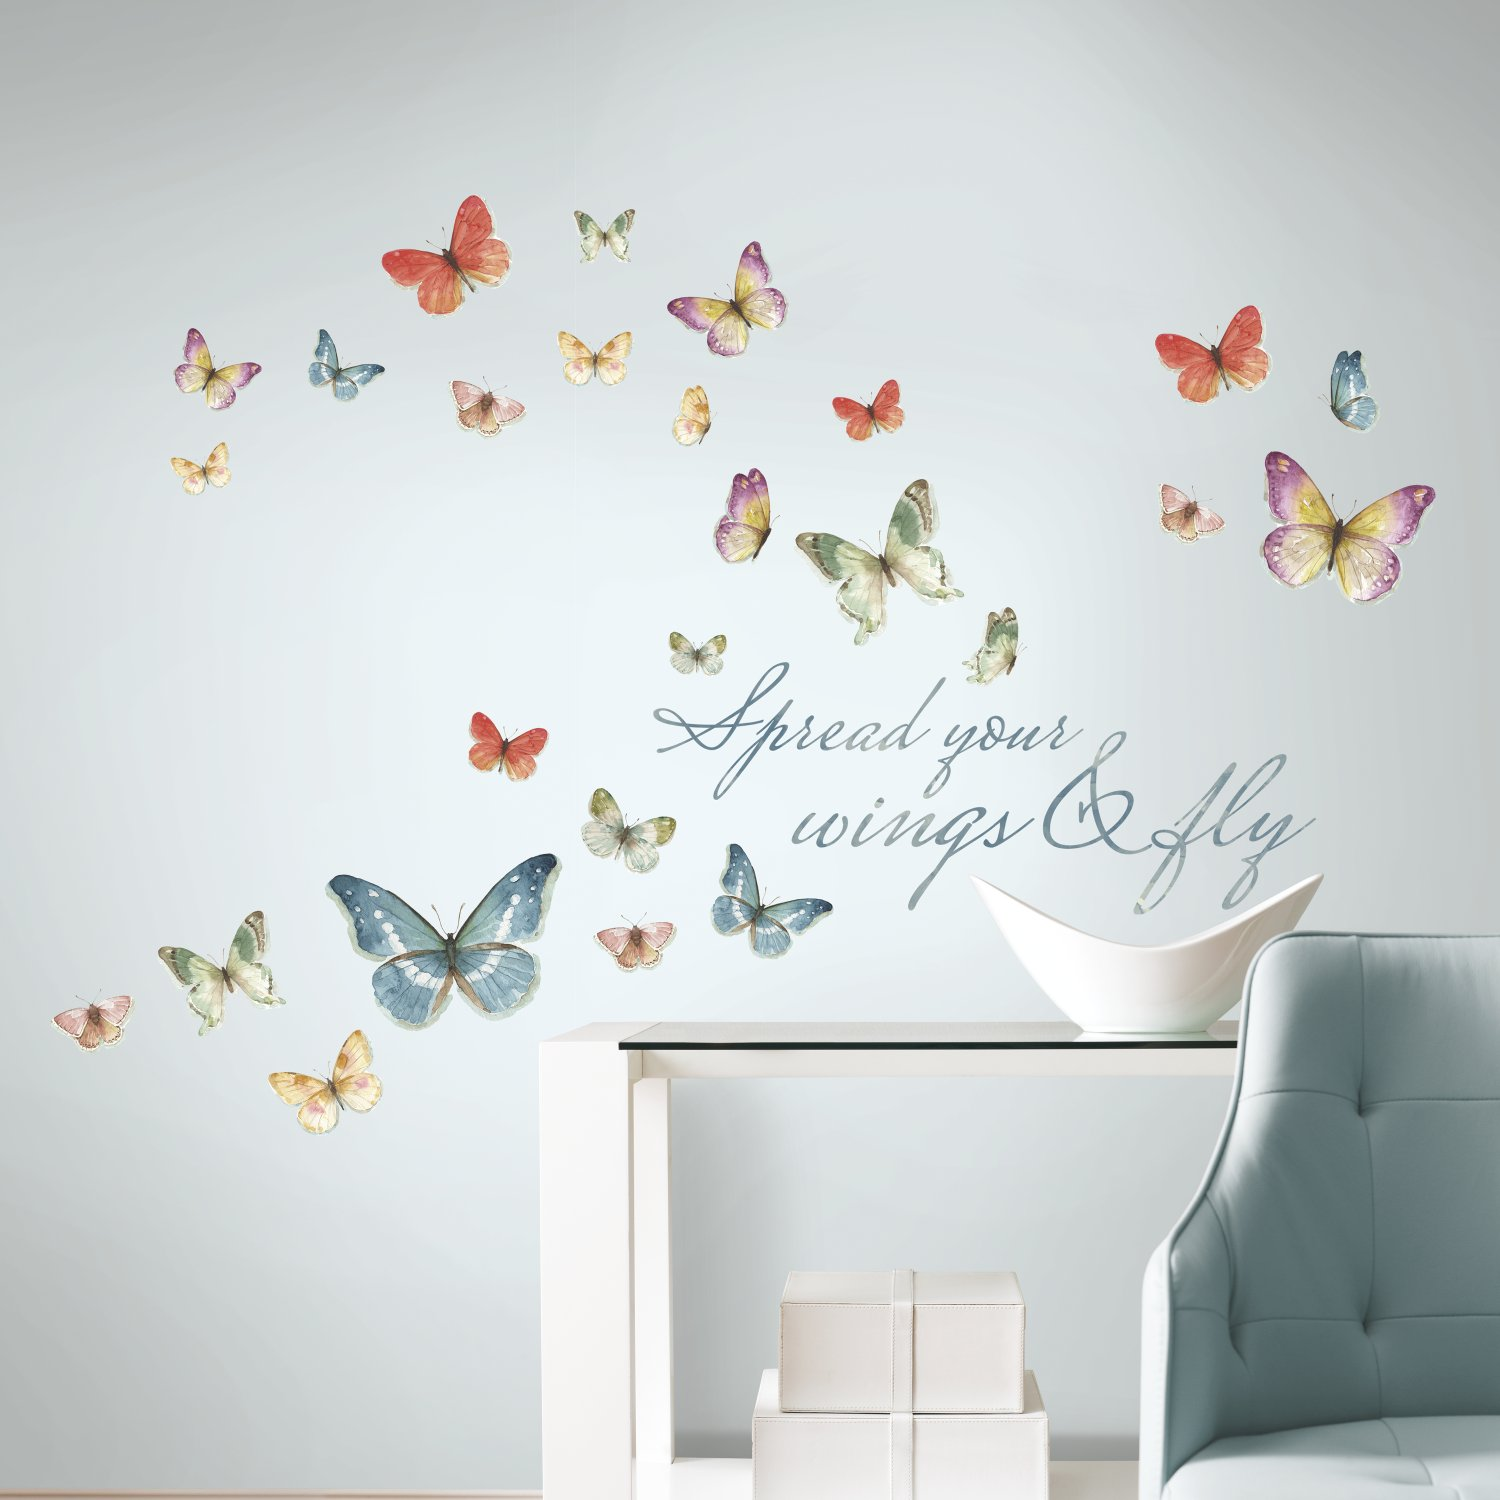 RoomMates Lisa Audit Butterfly Quote Peel And Stick Wall Decals by RoomMates (Image #1)